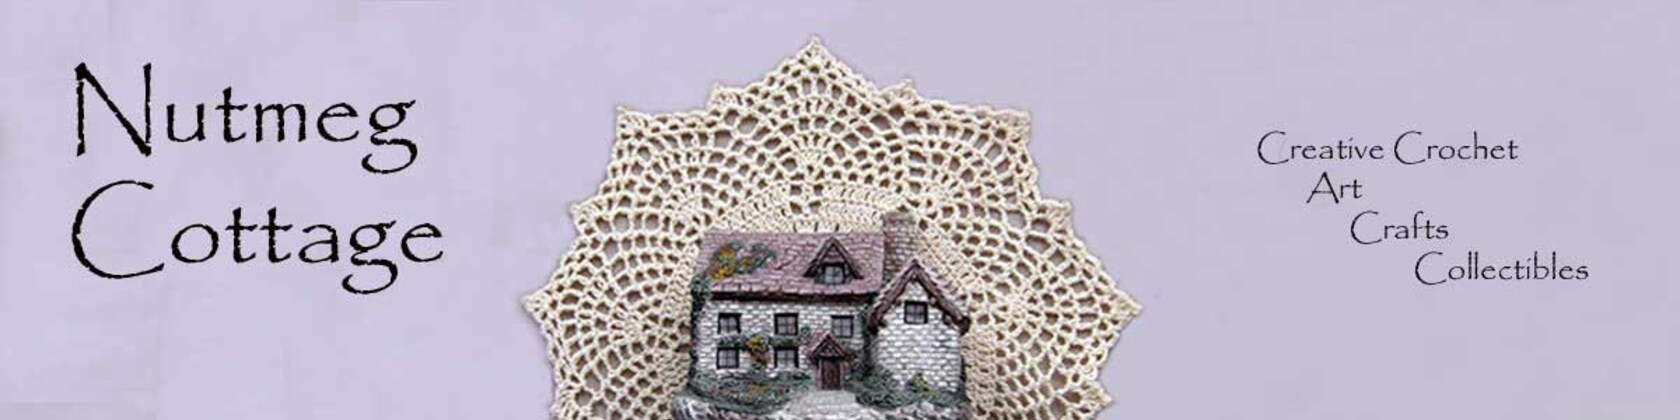 Creative Crochet Art Crafts And Collectibles Od Nutmegcottage